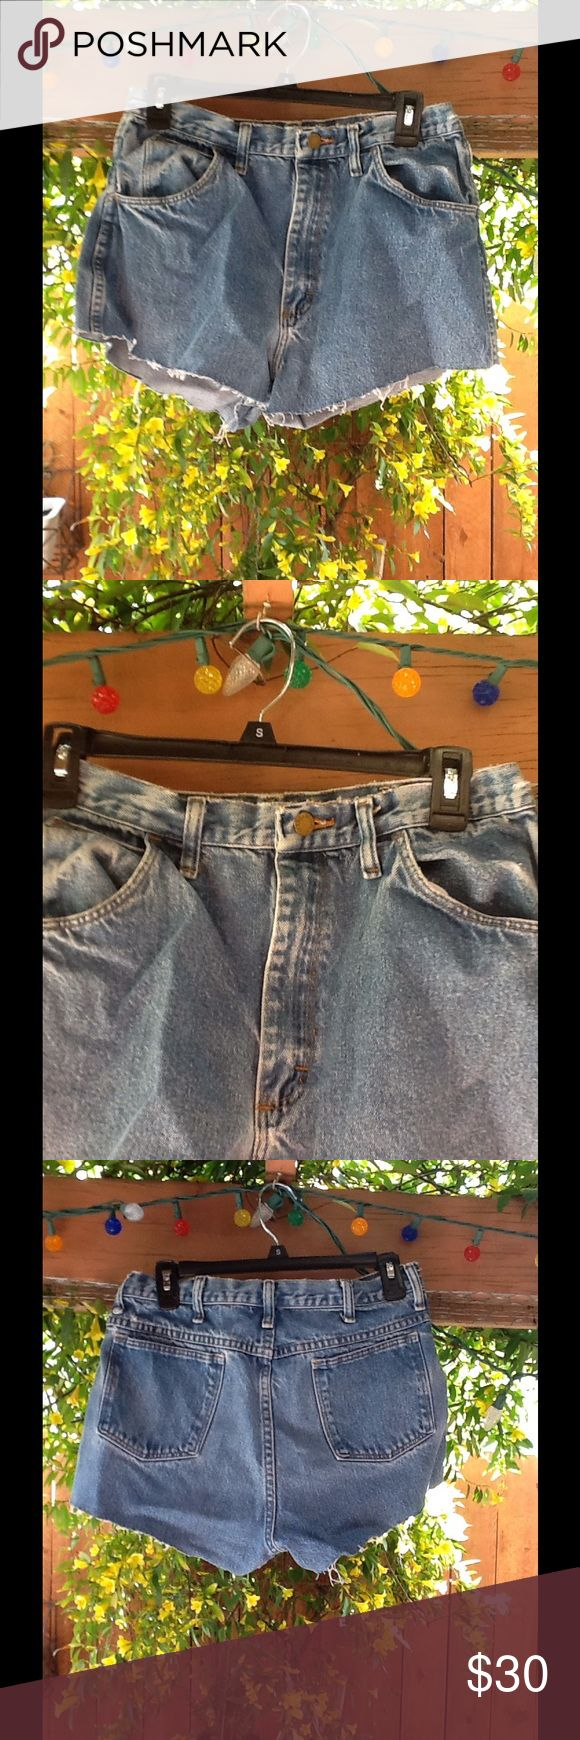 "Altered cut off jeans approx: medium/ large Great altered cut off jean shorts. Waist: 15 1/2, Hips: 36"", Inseam: 2"", Rise: 11 1/2"". Approx: fits most women medium/large.  (13) Lengendary Gold Shorts Jean Shorts"